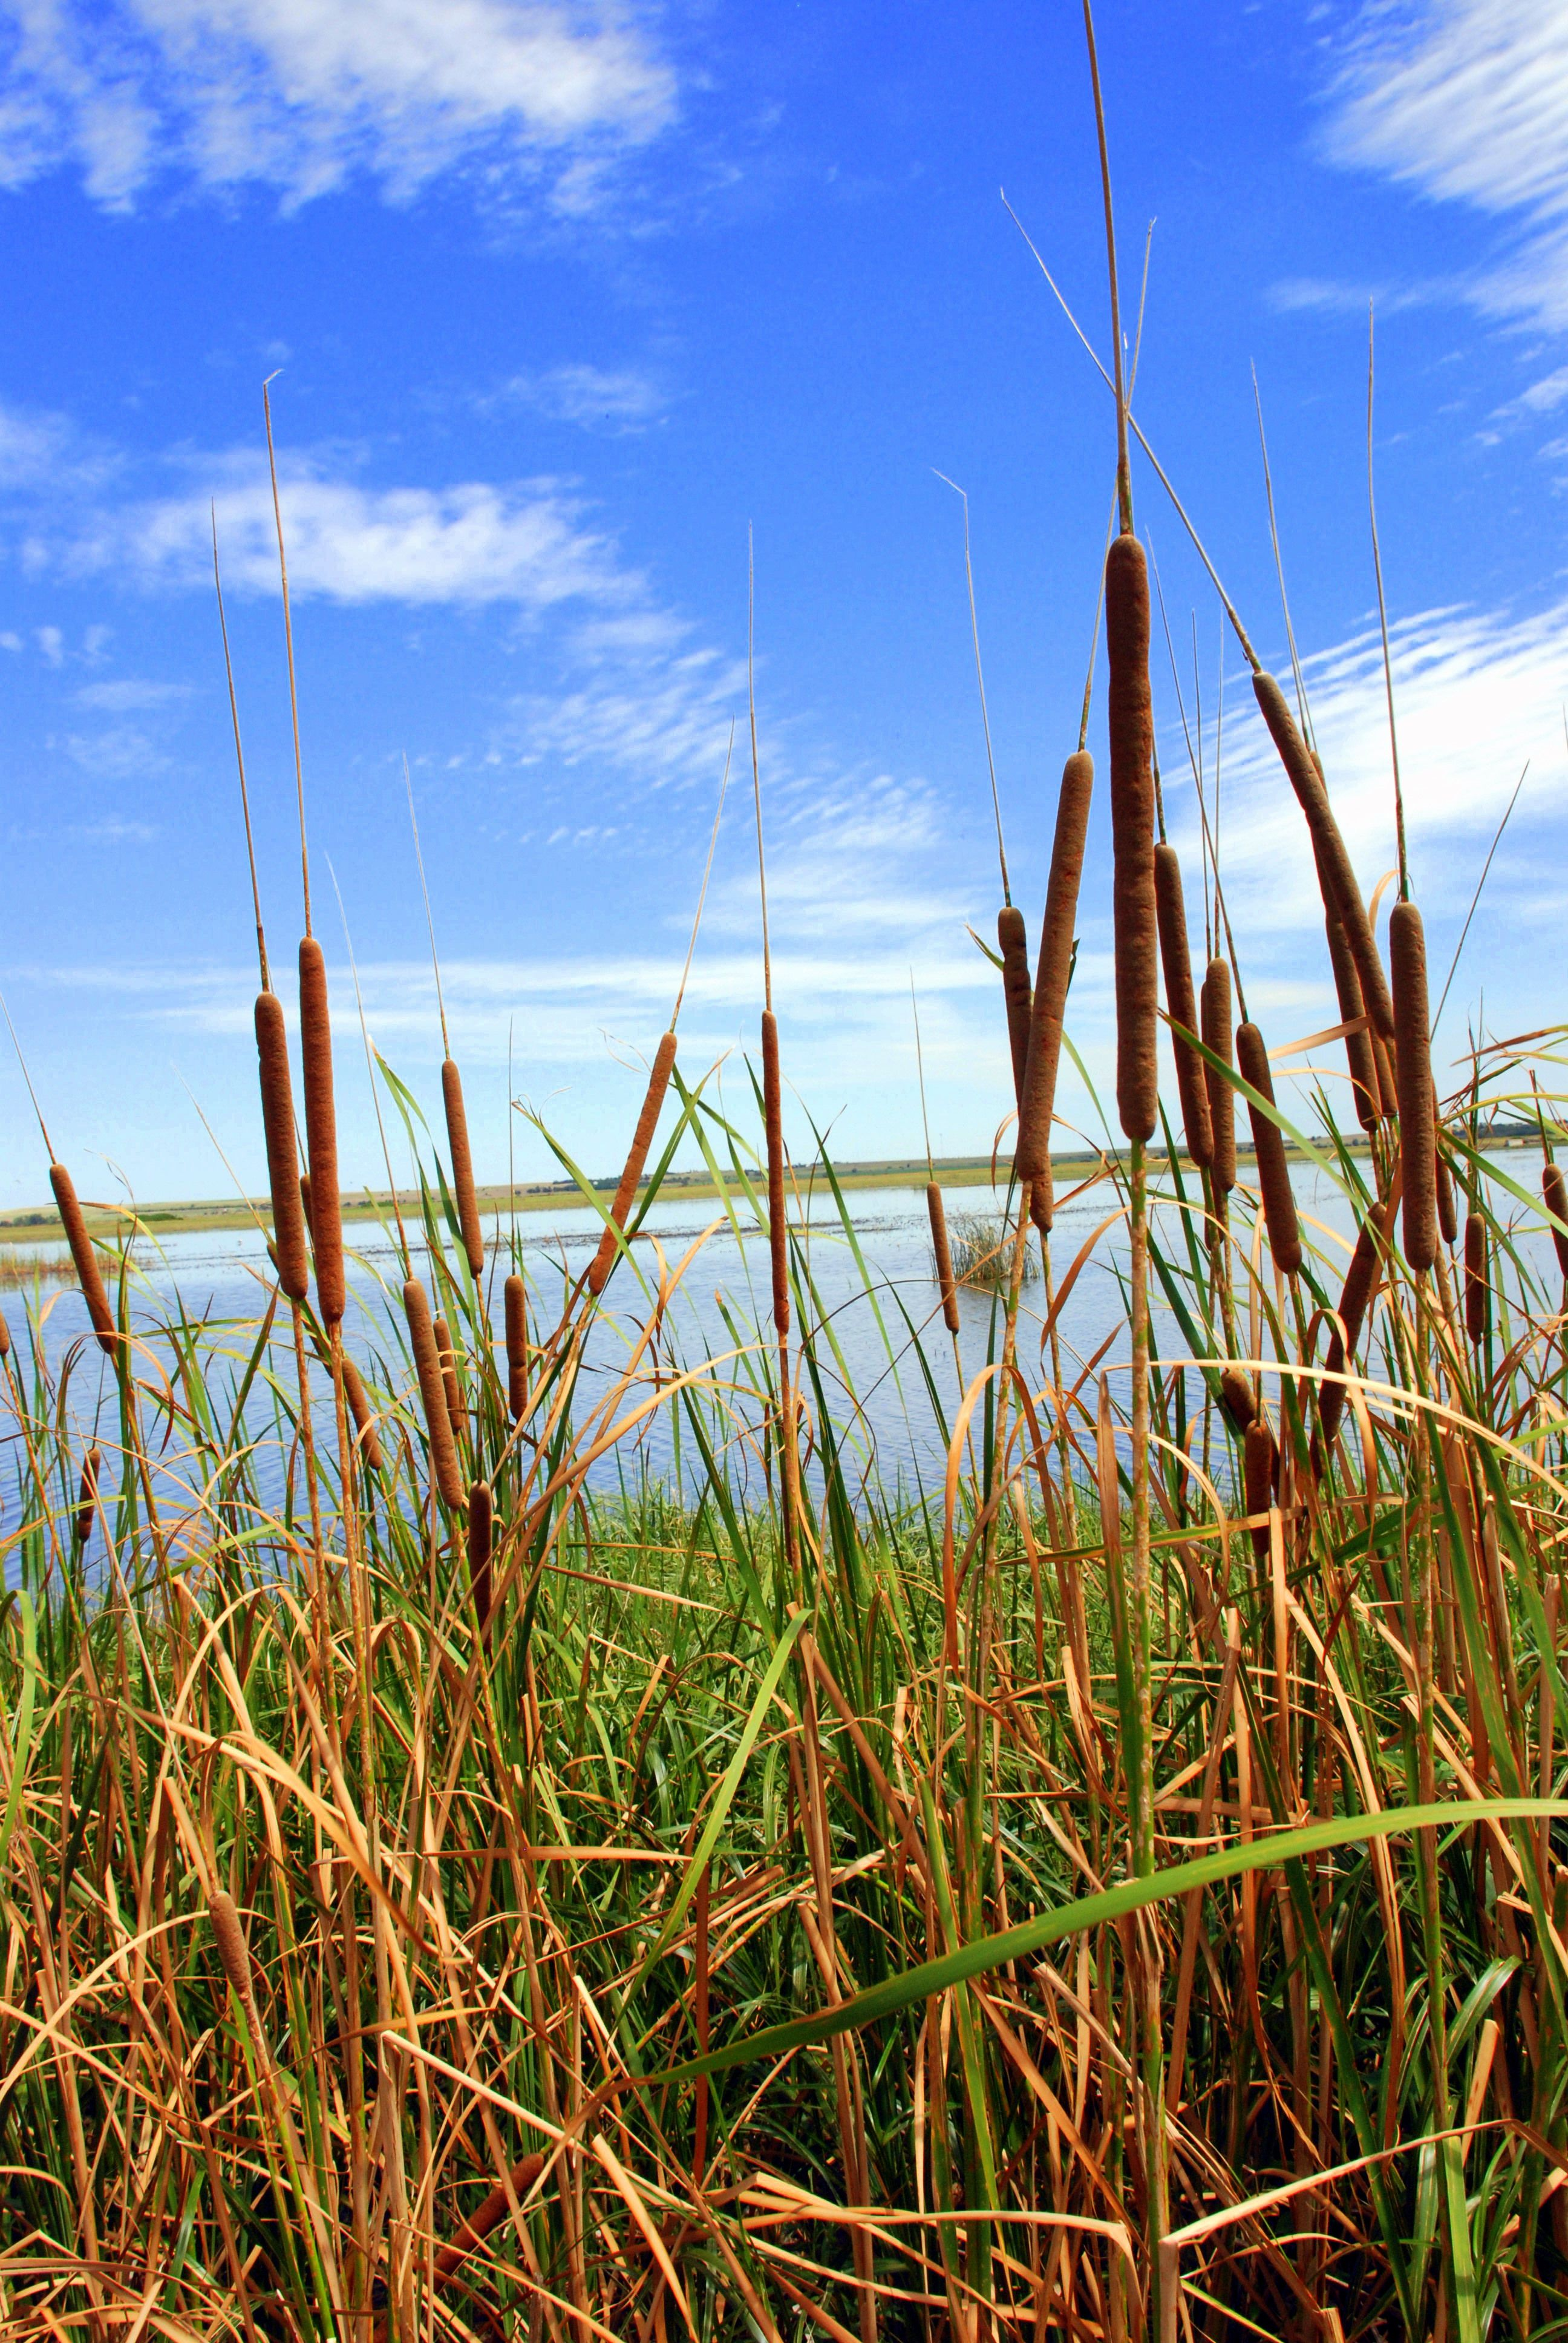 Some cat tails at Cheyenne Bottoms. A beautiful Wetland that migratory birds rest at during their migratory flights.